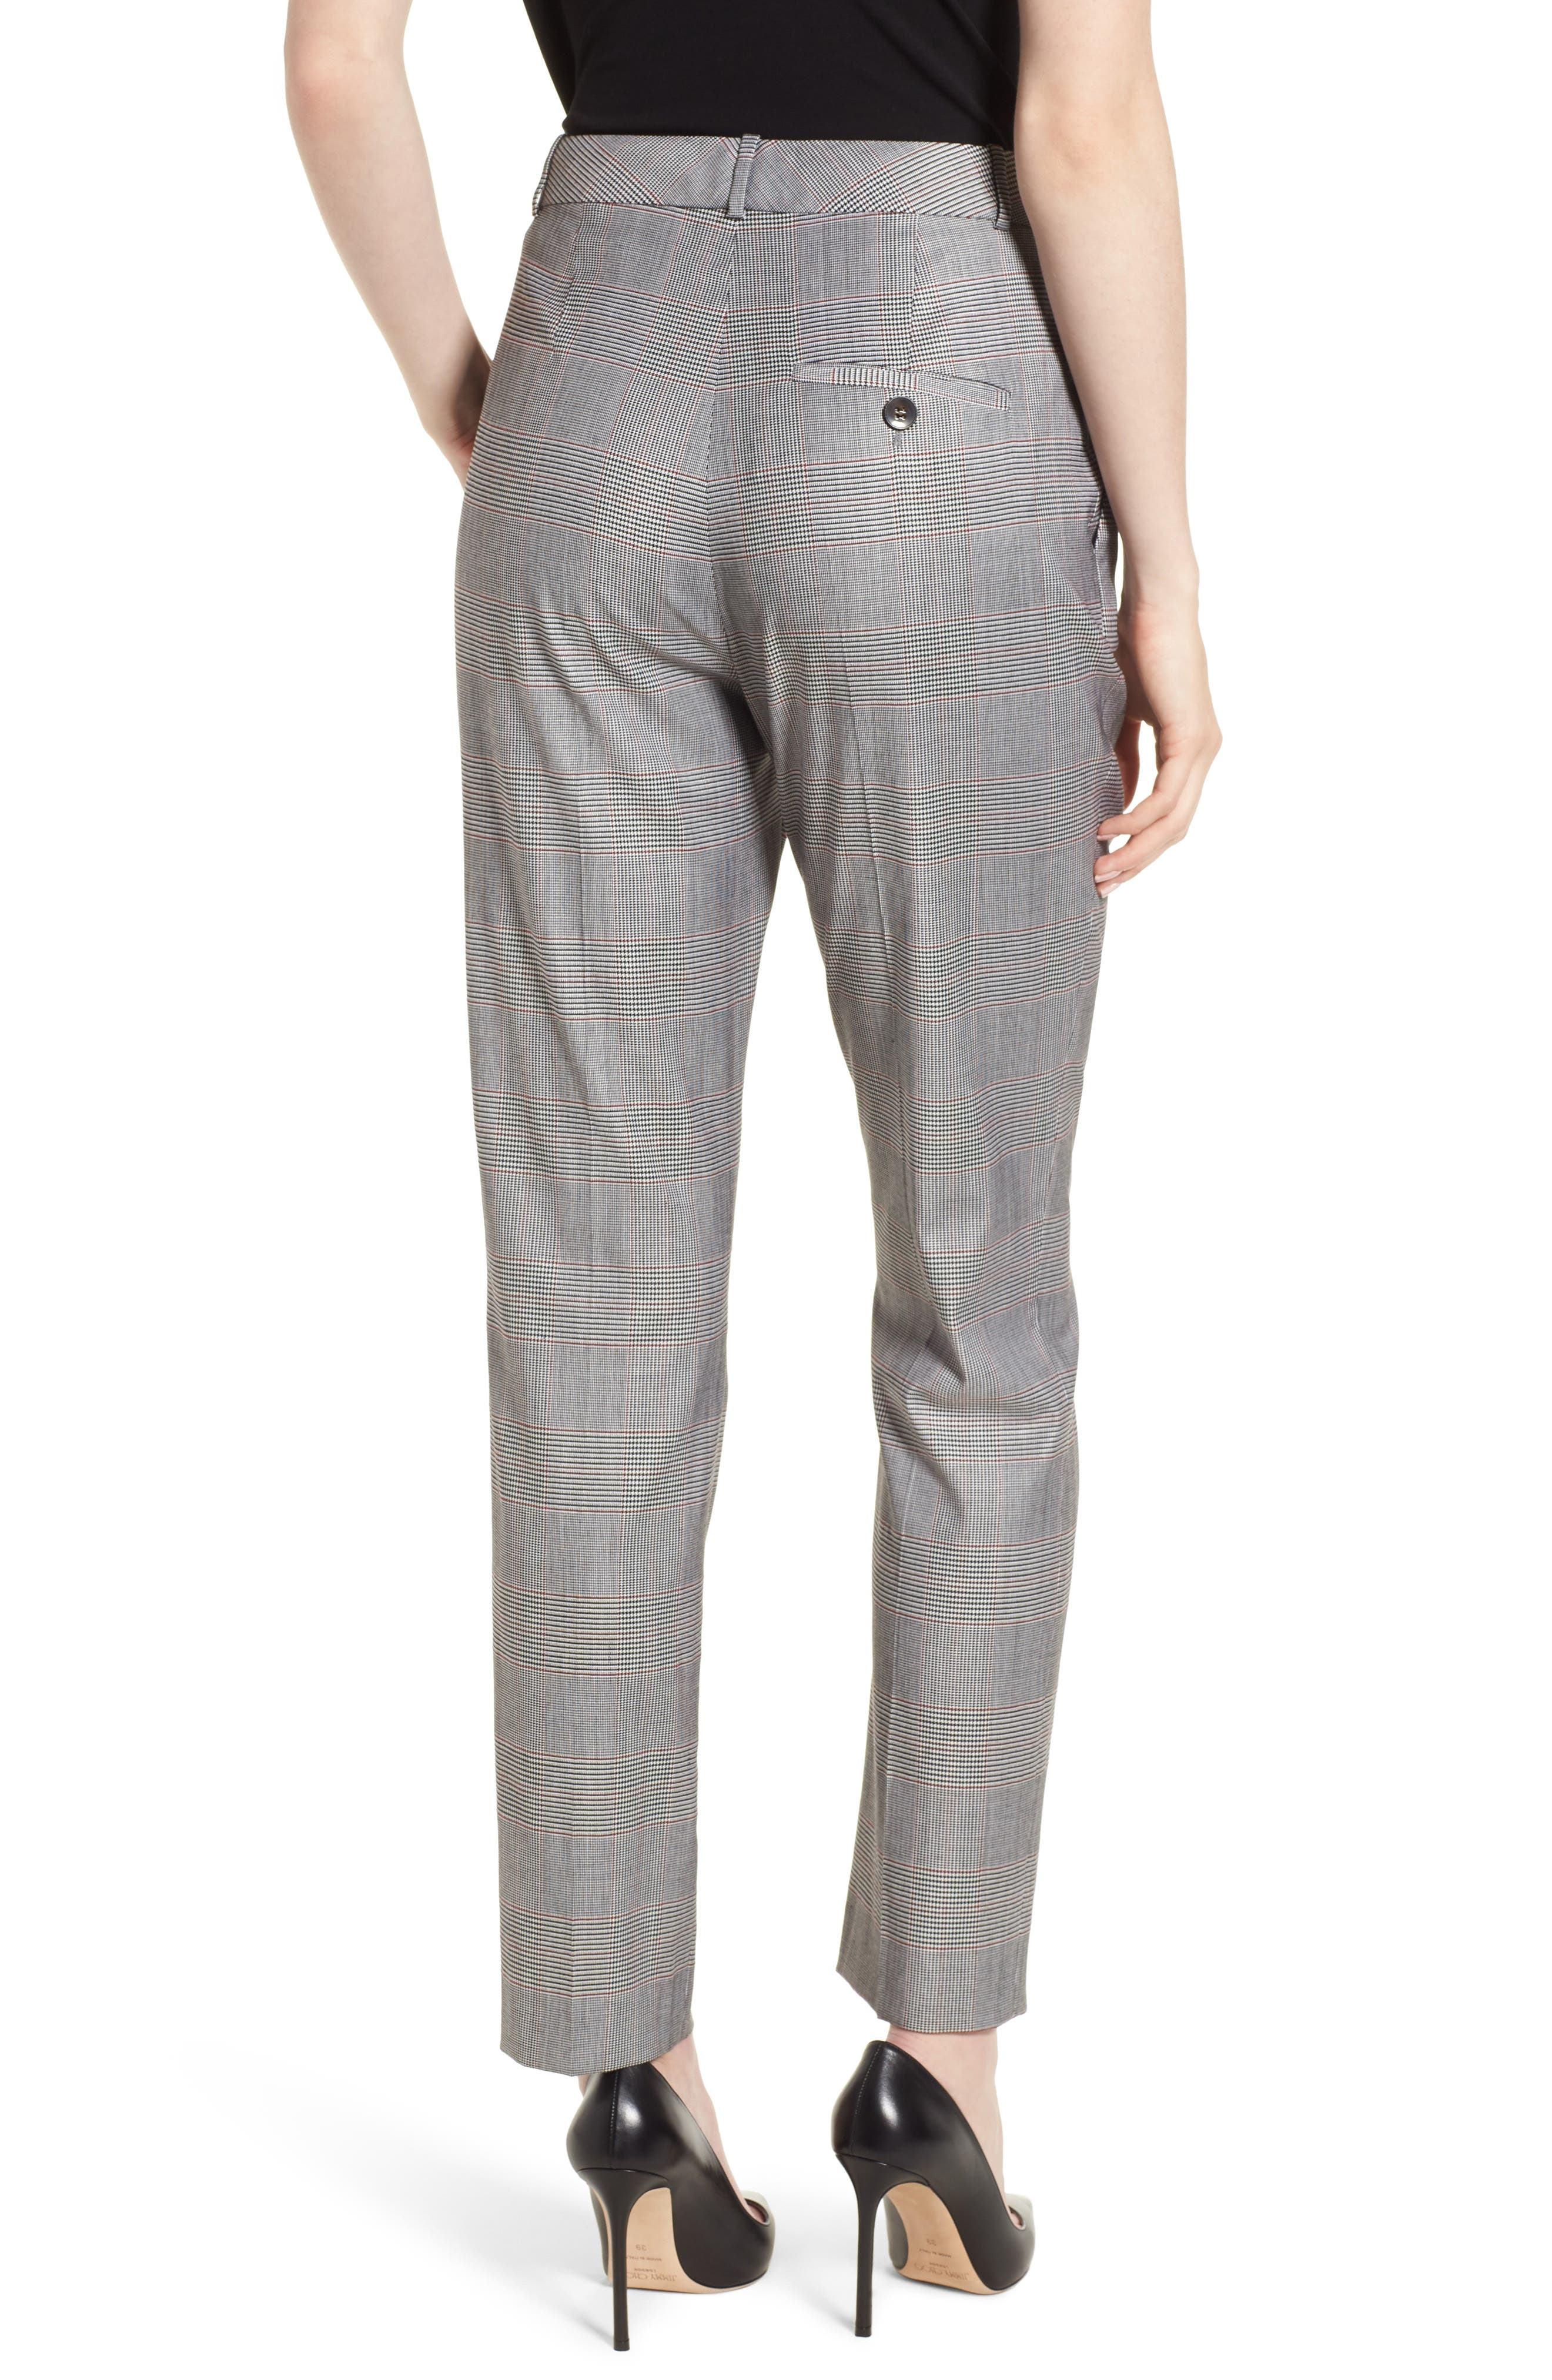 Tofilia Glencheck Slim Fit Trousers,                             Alternate thumbnail 2, color,                             874